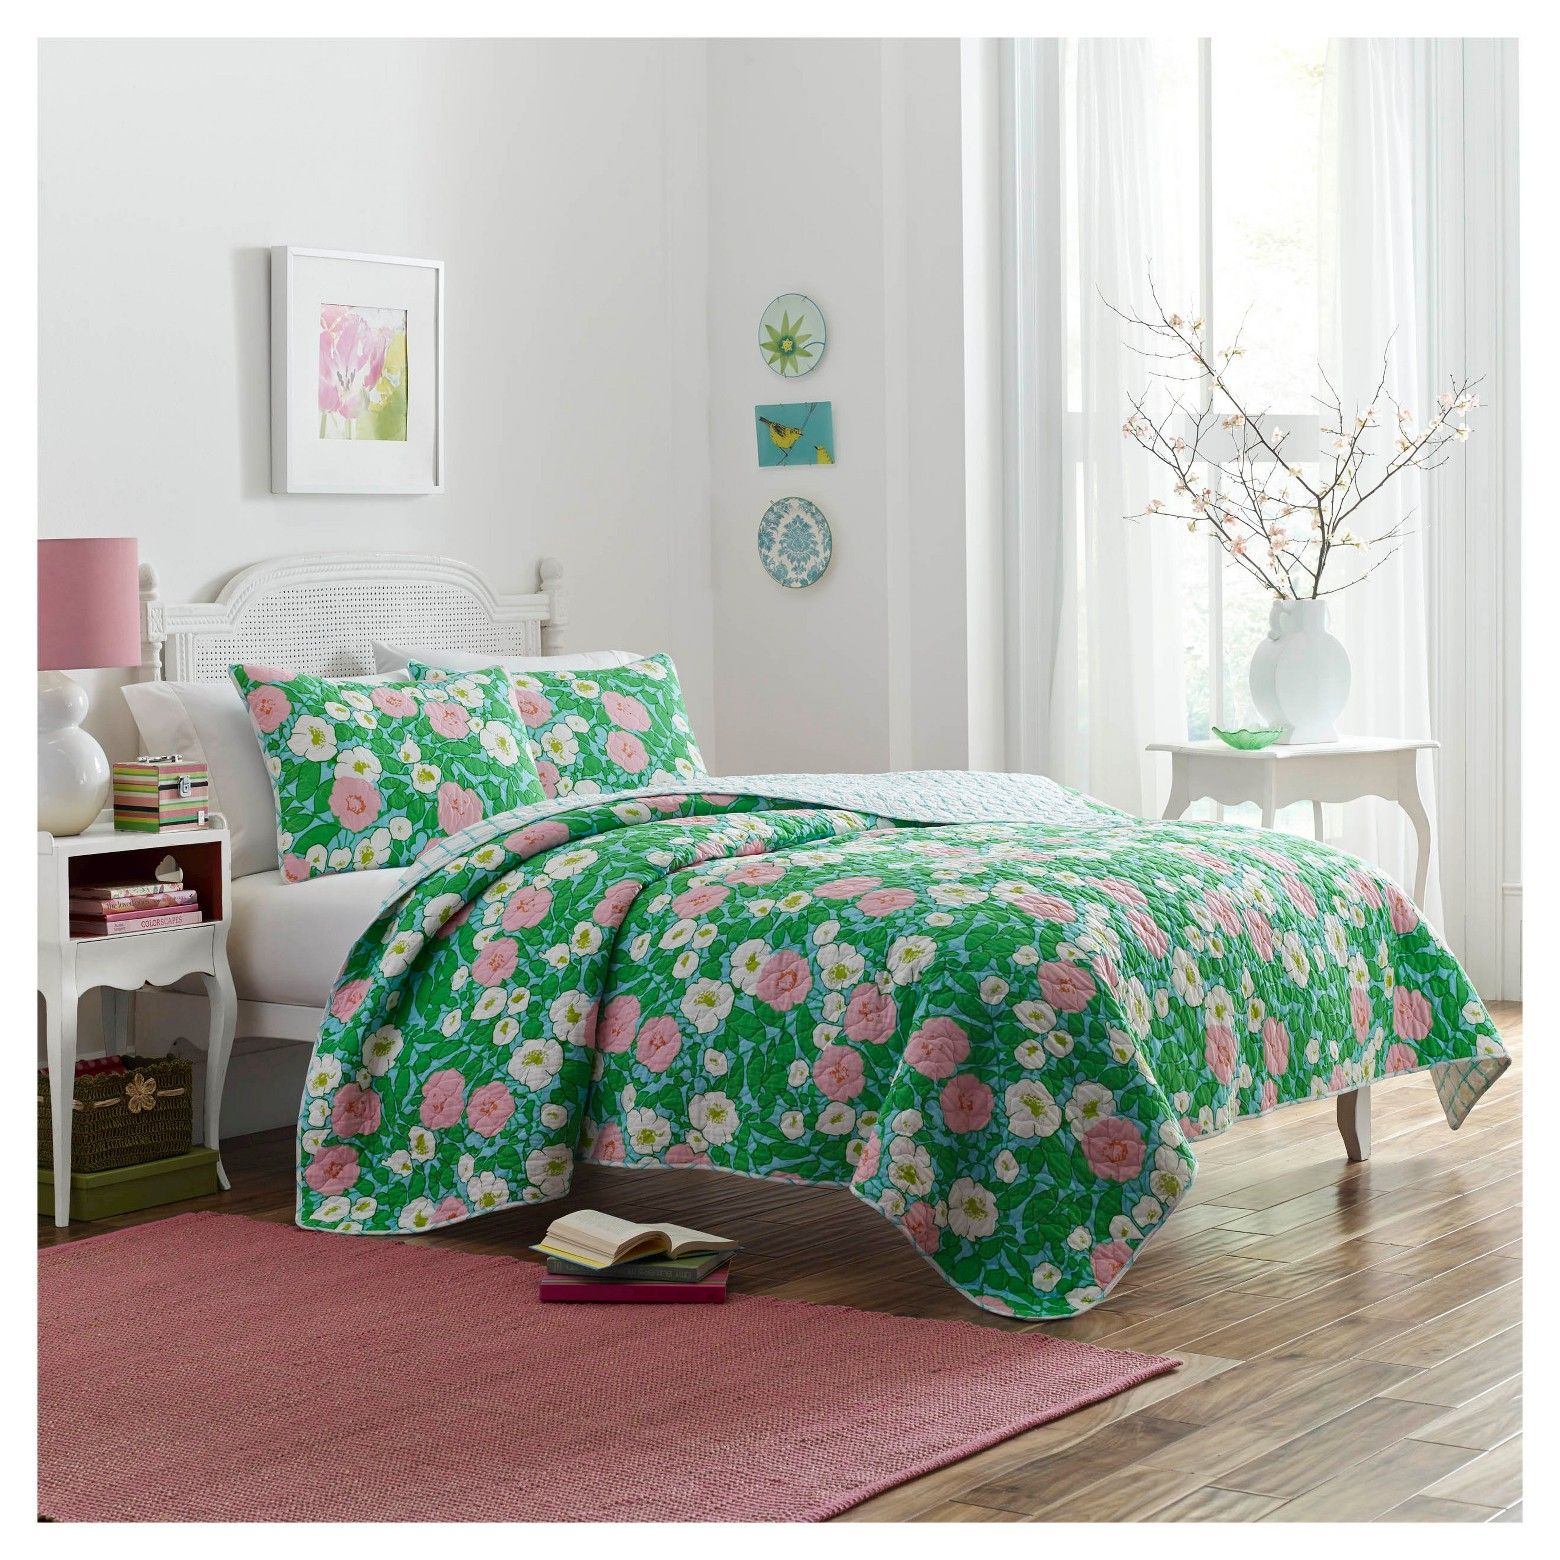 Give your room stylish update with the Poppy & Fritz Poppy Garden Quilt Set in Yellow. This set has quilted stitching for a classic look and feel, creating a beautiful bedroom setup. Made of 100% cotton, this set provides first-rate comfort and construction. Machine washable, the quilt and shams are easy to care for and will keep your space looking fresh.